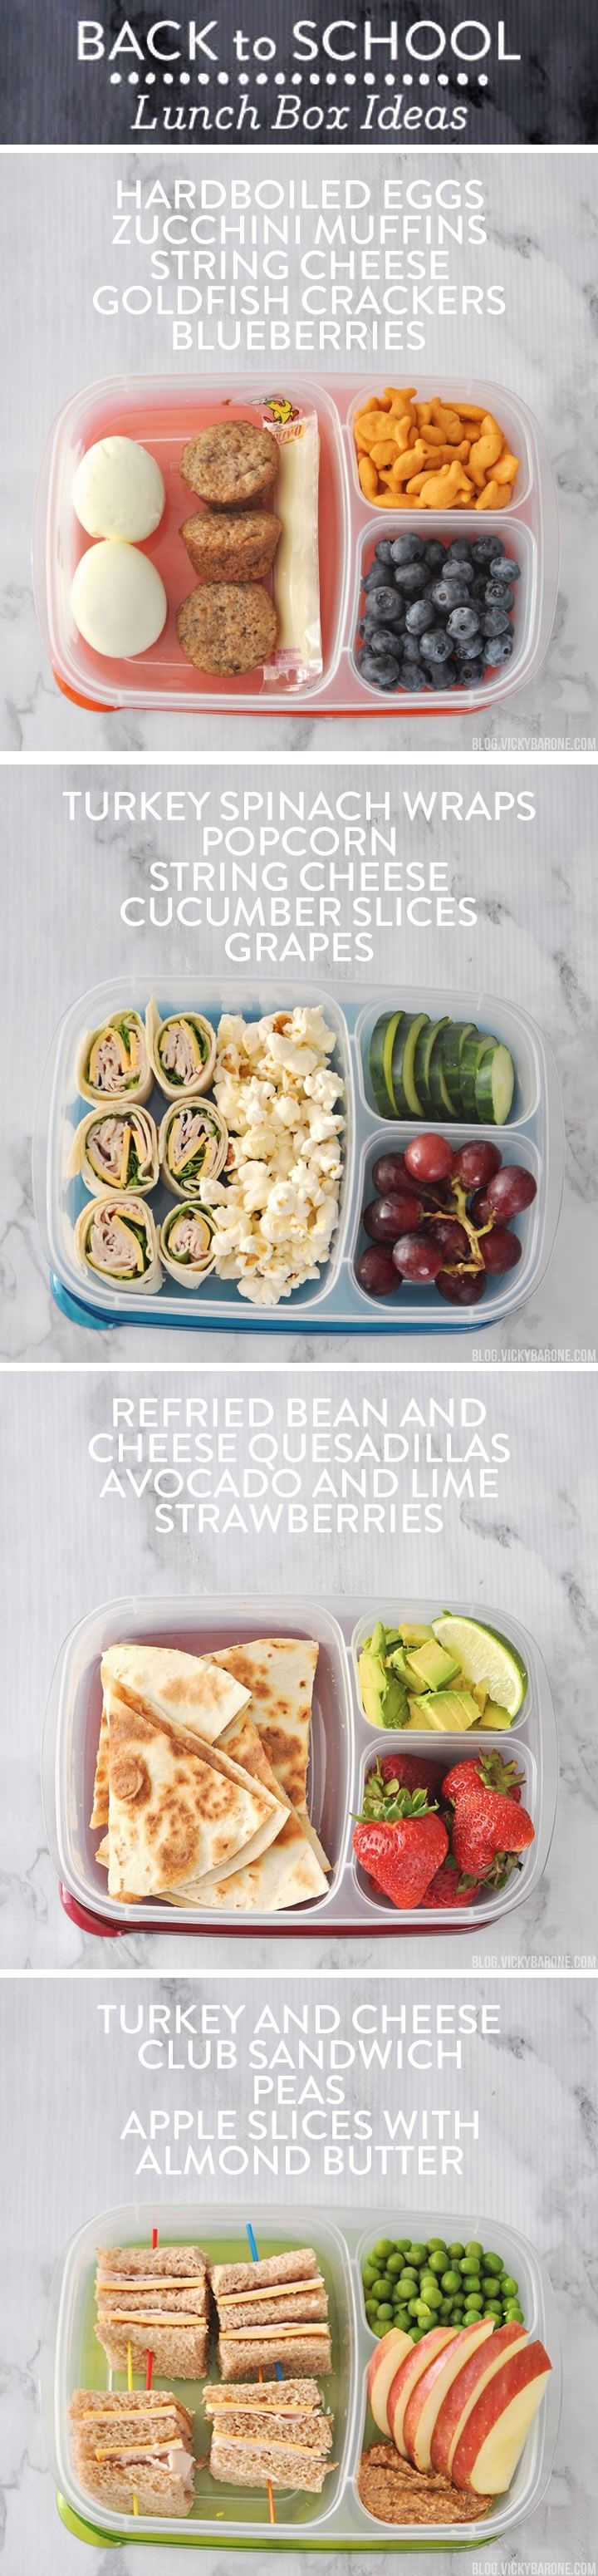 Yummy packed lunch ideas for when youu2019re stumped on what to send your kiddo to school with. Packed in @easylunchboxes, these lunch combinations have fruits, veggies, and protein to give your little ones the nutrition and energy to tackle the day without sacrificing taste. #weightlossmotivation